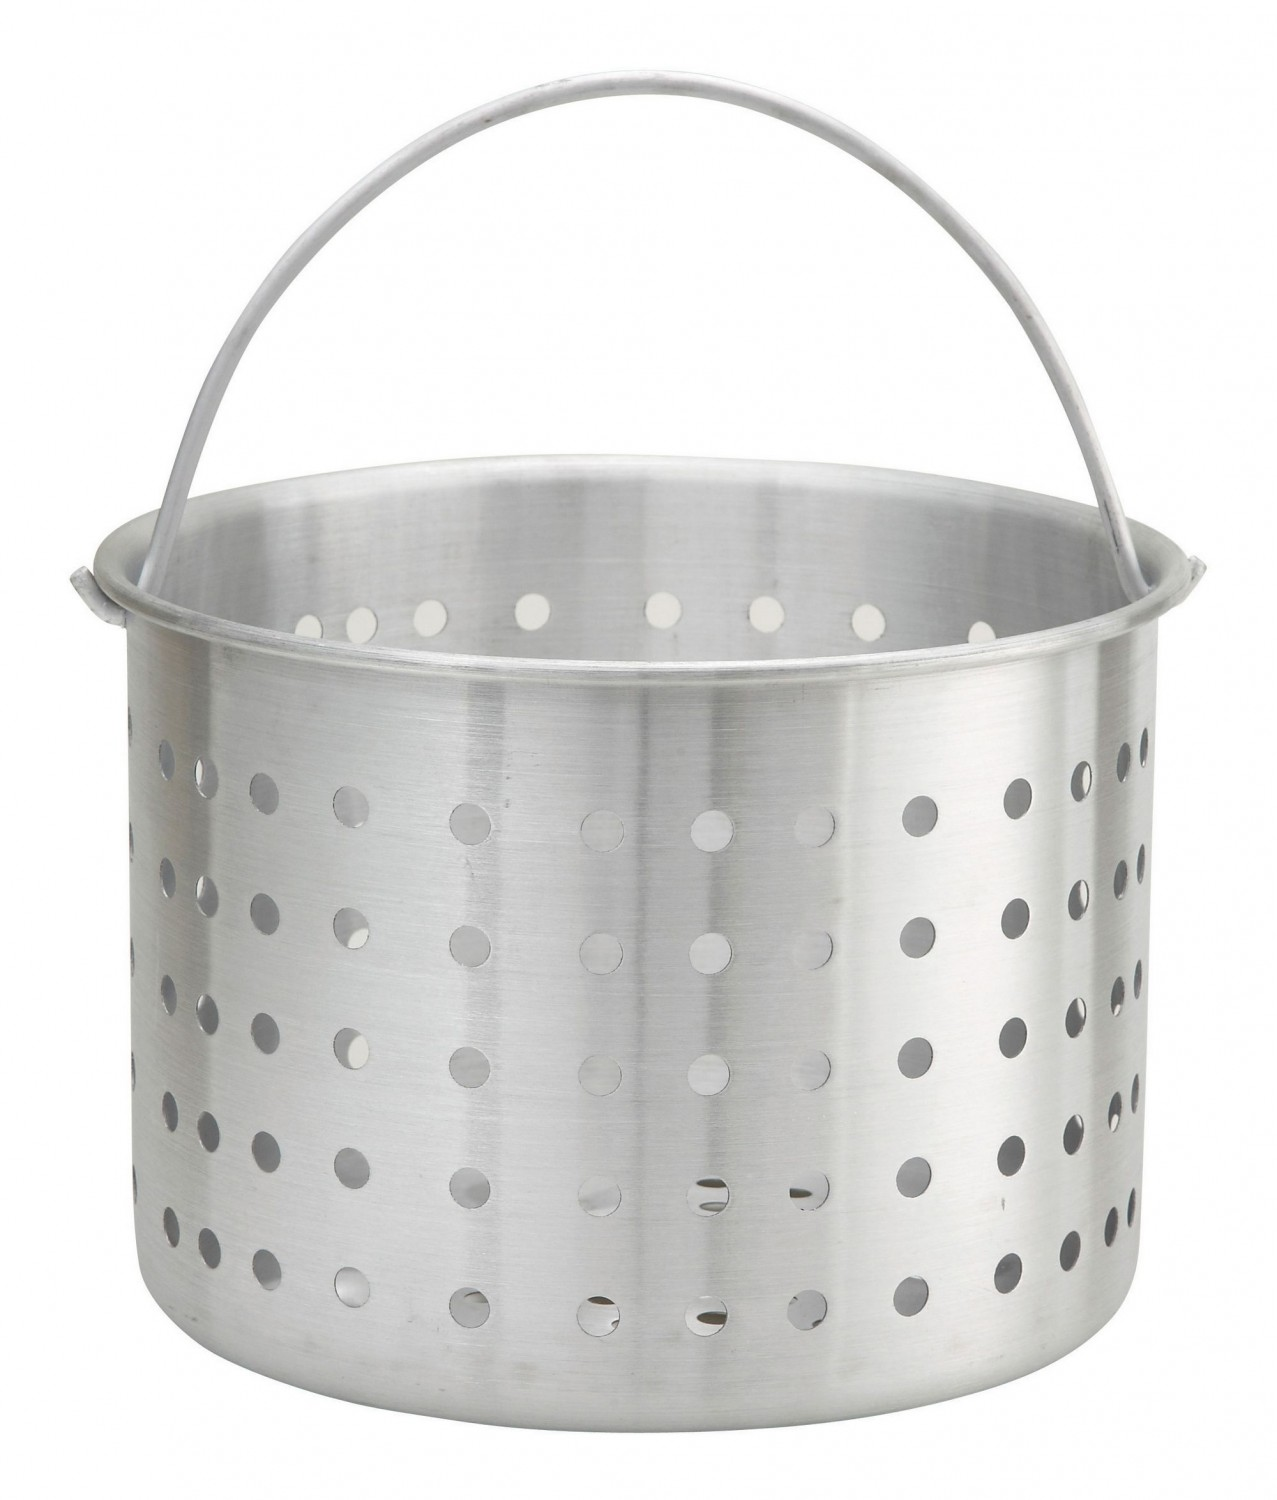 Winco ALSB-20 Steamer Basket fits Stock Pot 20 Qt.